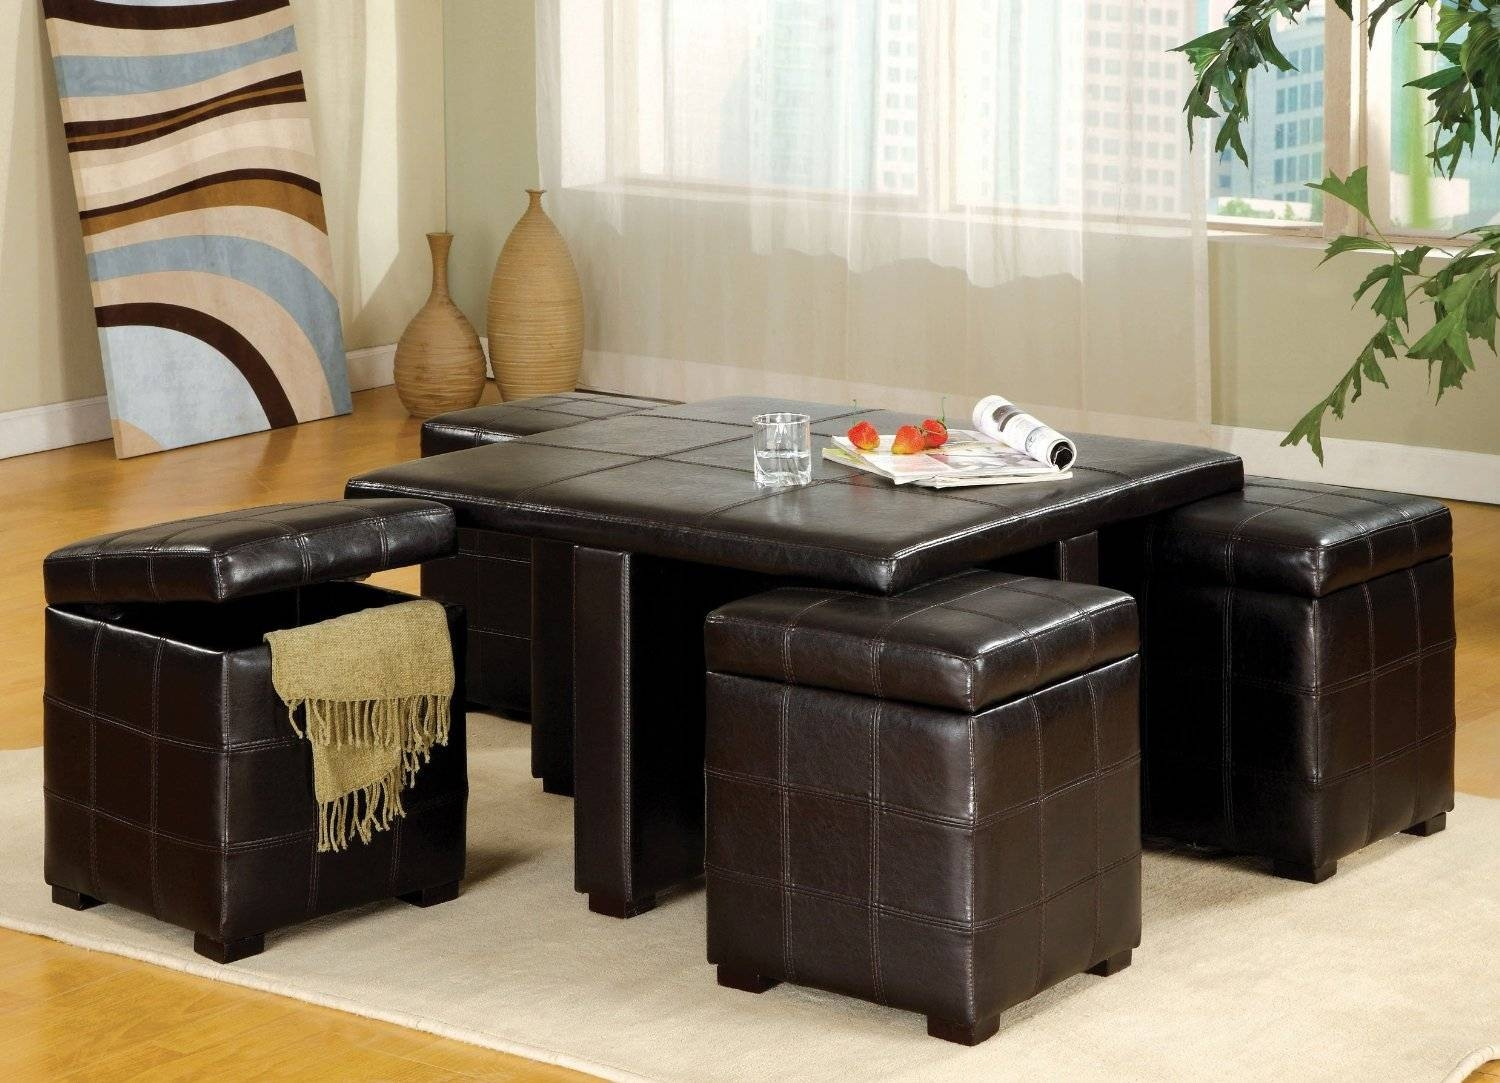 Square Coffee Table With Pull Out Ottomans | Coffee Tables Decoration in Square Coffee Table Storages (Image 25 of 30)